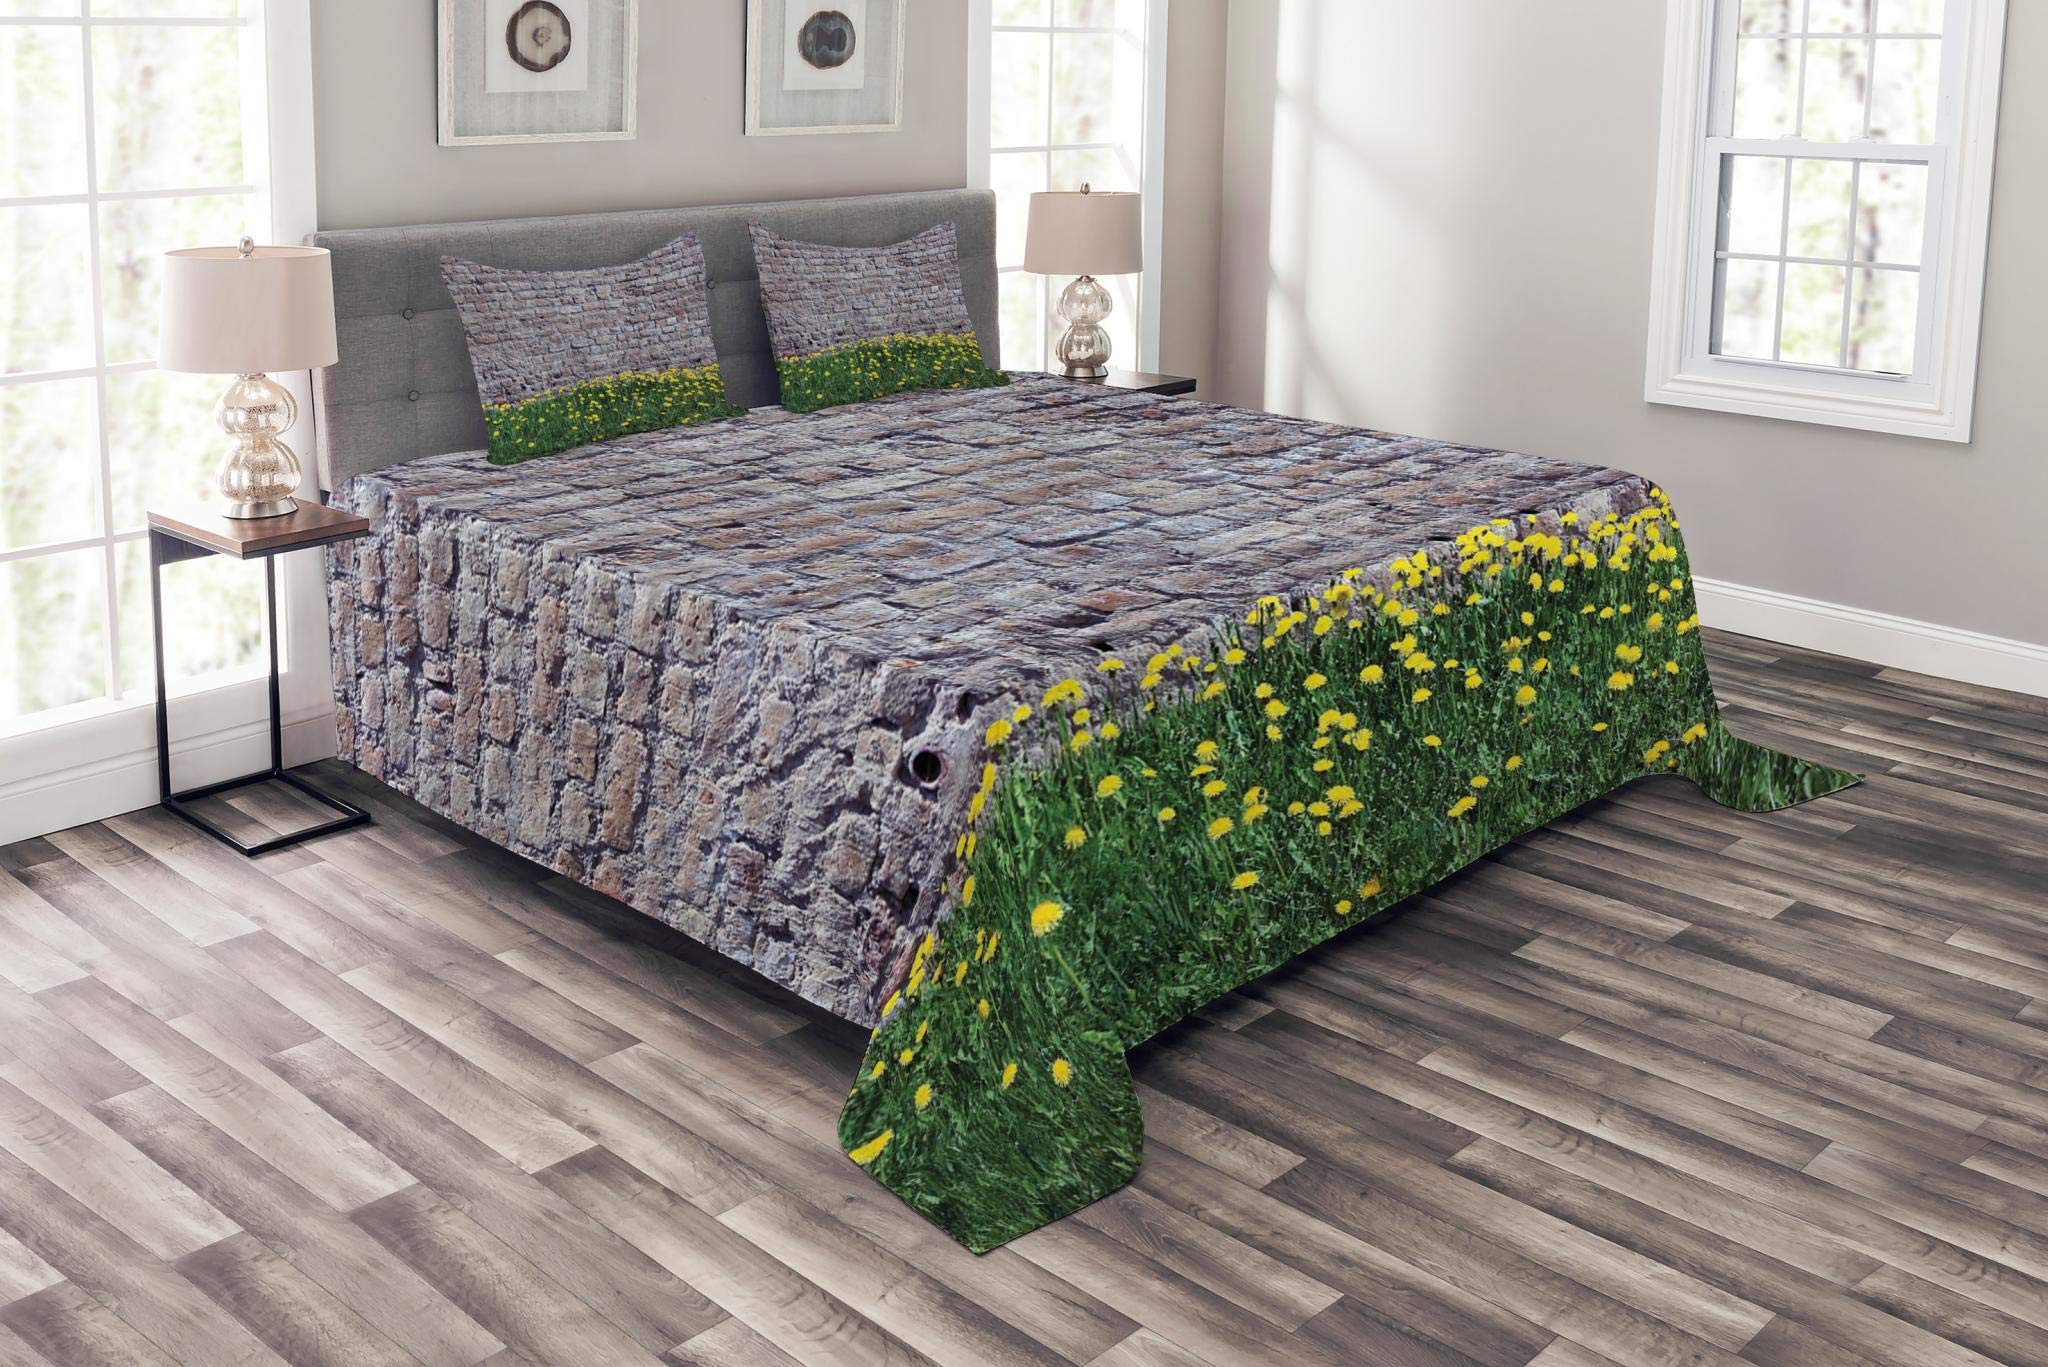 Lunarable Brick Wall Bedspread Set Queen Size, Dandelion Flowers with Old Grunge Style Brick Wall Meadow Natural Retro Pattern, Decorative Quilted 3 Piece Coverlet Set with 2 Pillow Shams, Multicolor